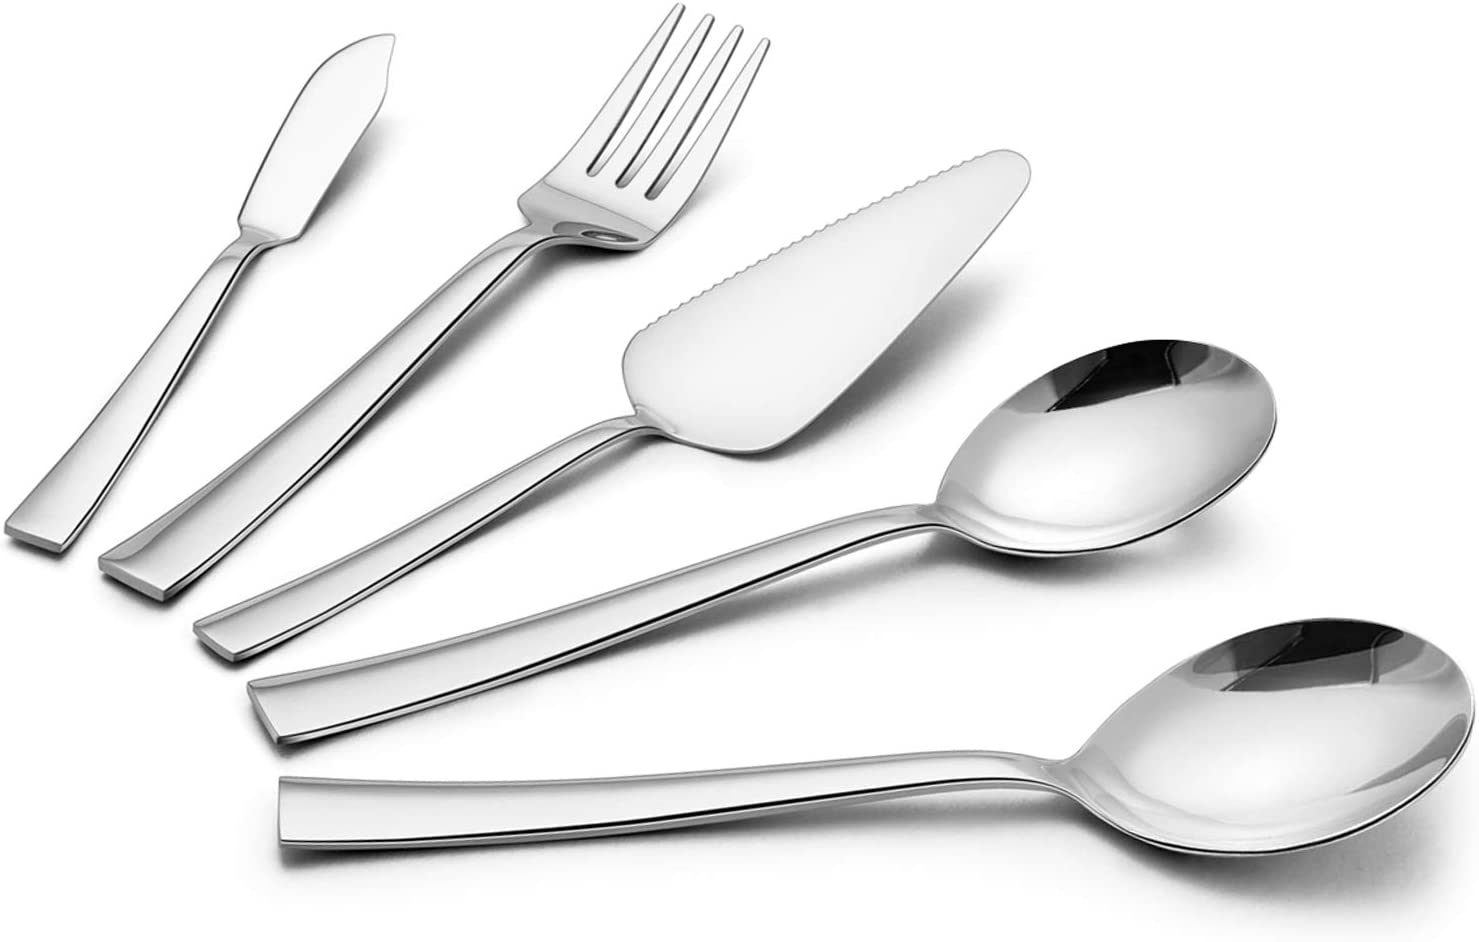 5-Piece Serving Utensil Set, HaWare Stainless Steel Hostess Set with Square Edges, Modern and Elegant, Mirror Finished and Dishwasher Safe